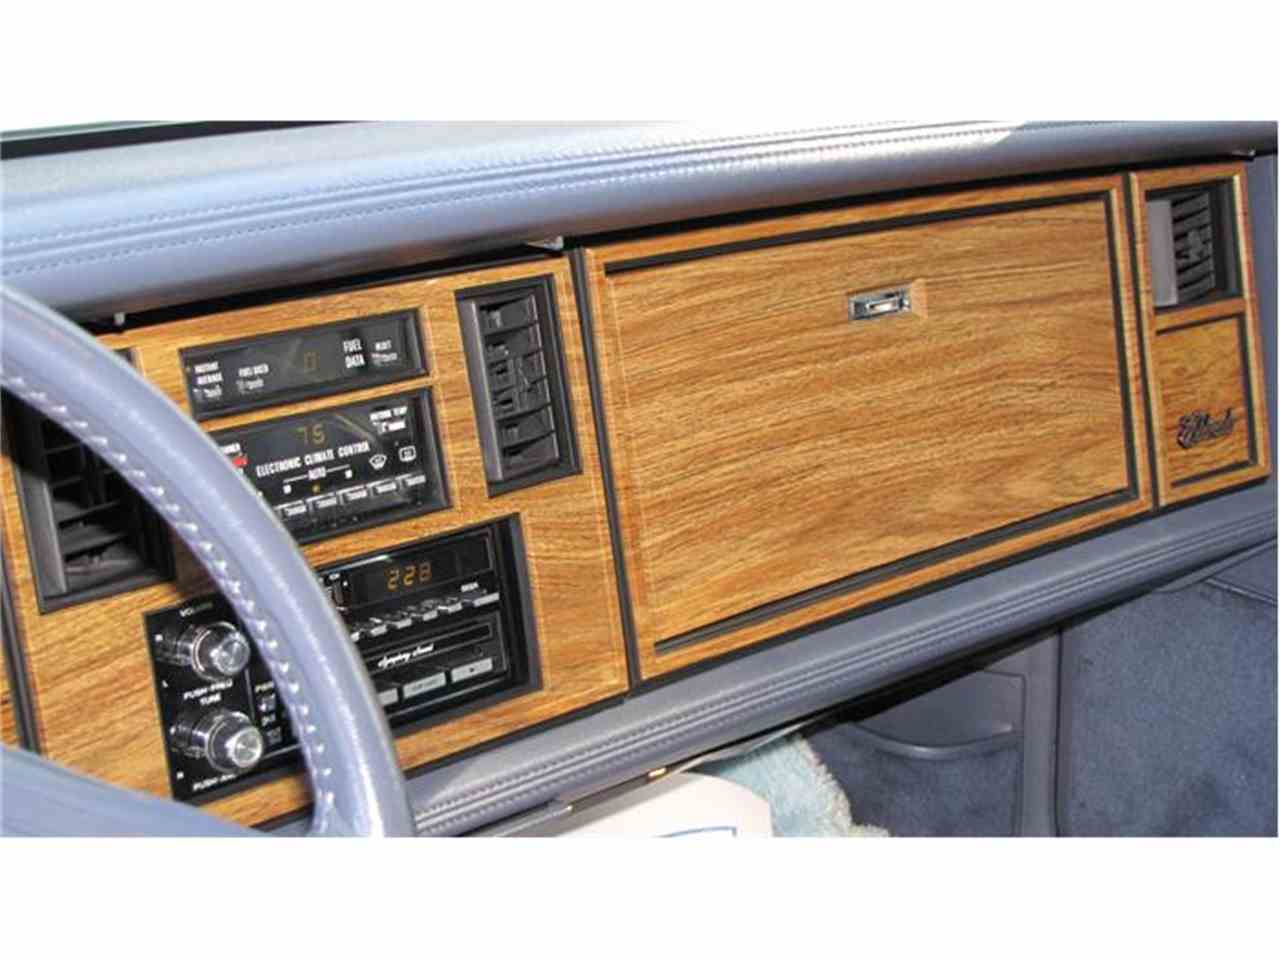 Large Picture of '84 Eldorado Biarritz - $15,000.00 Offered by a Private Seller - 7FZZ